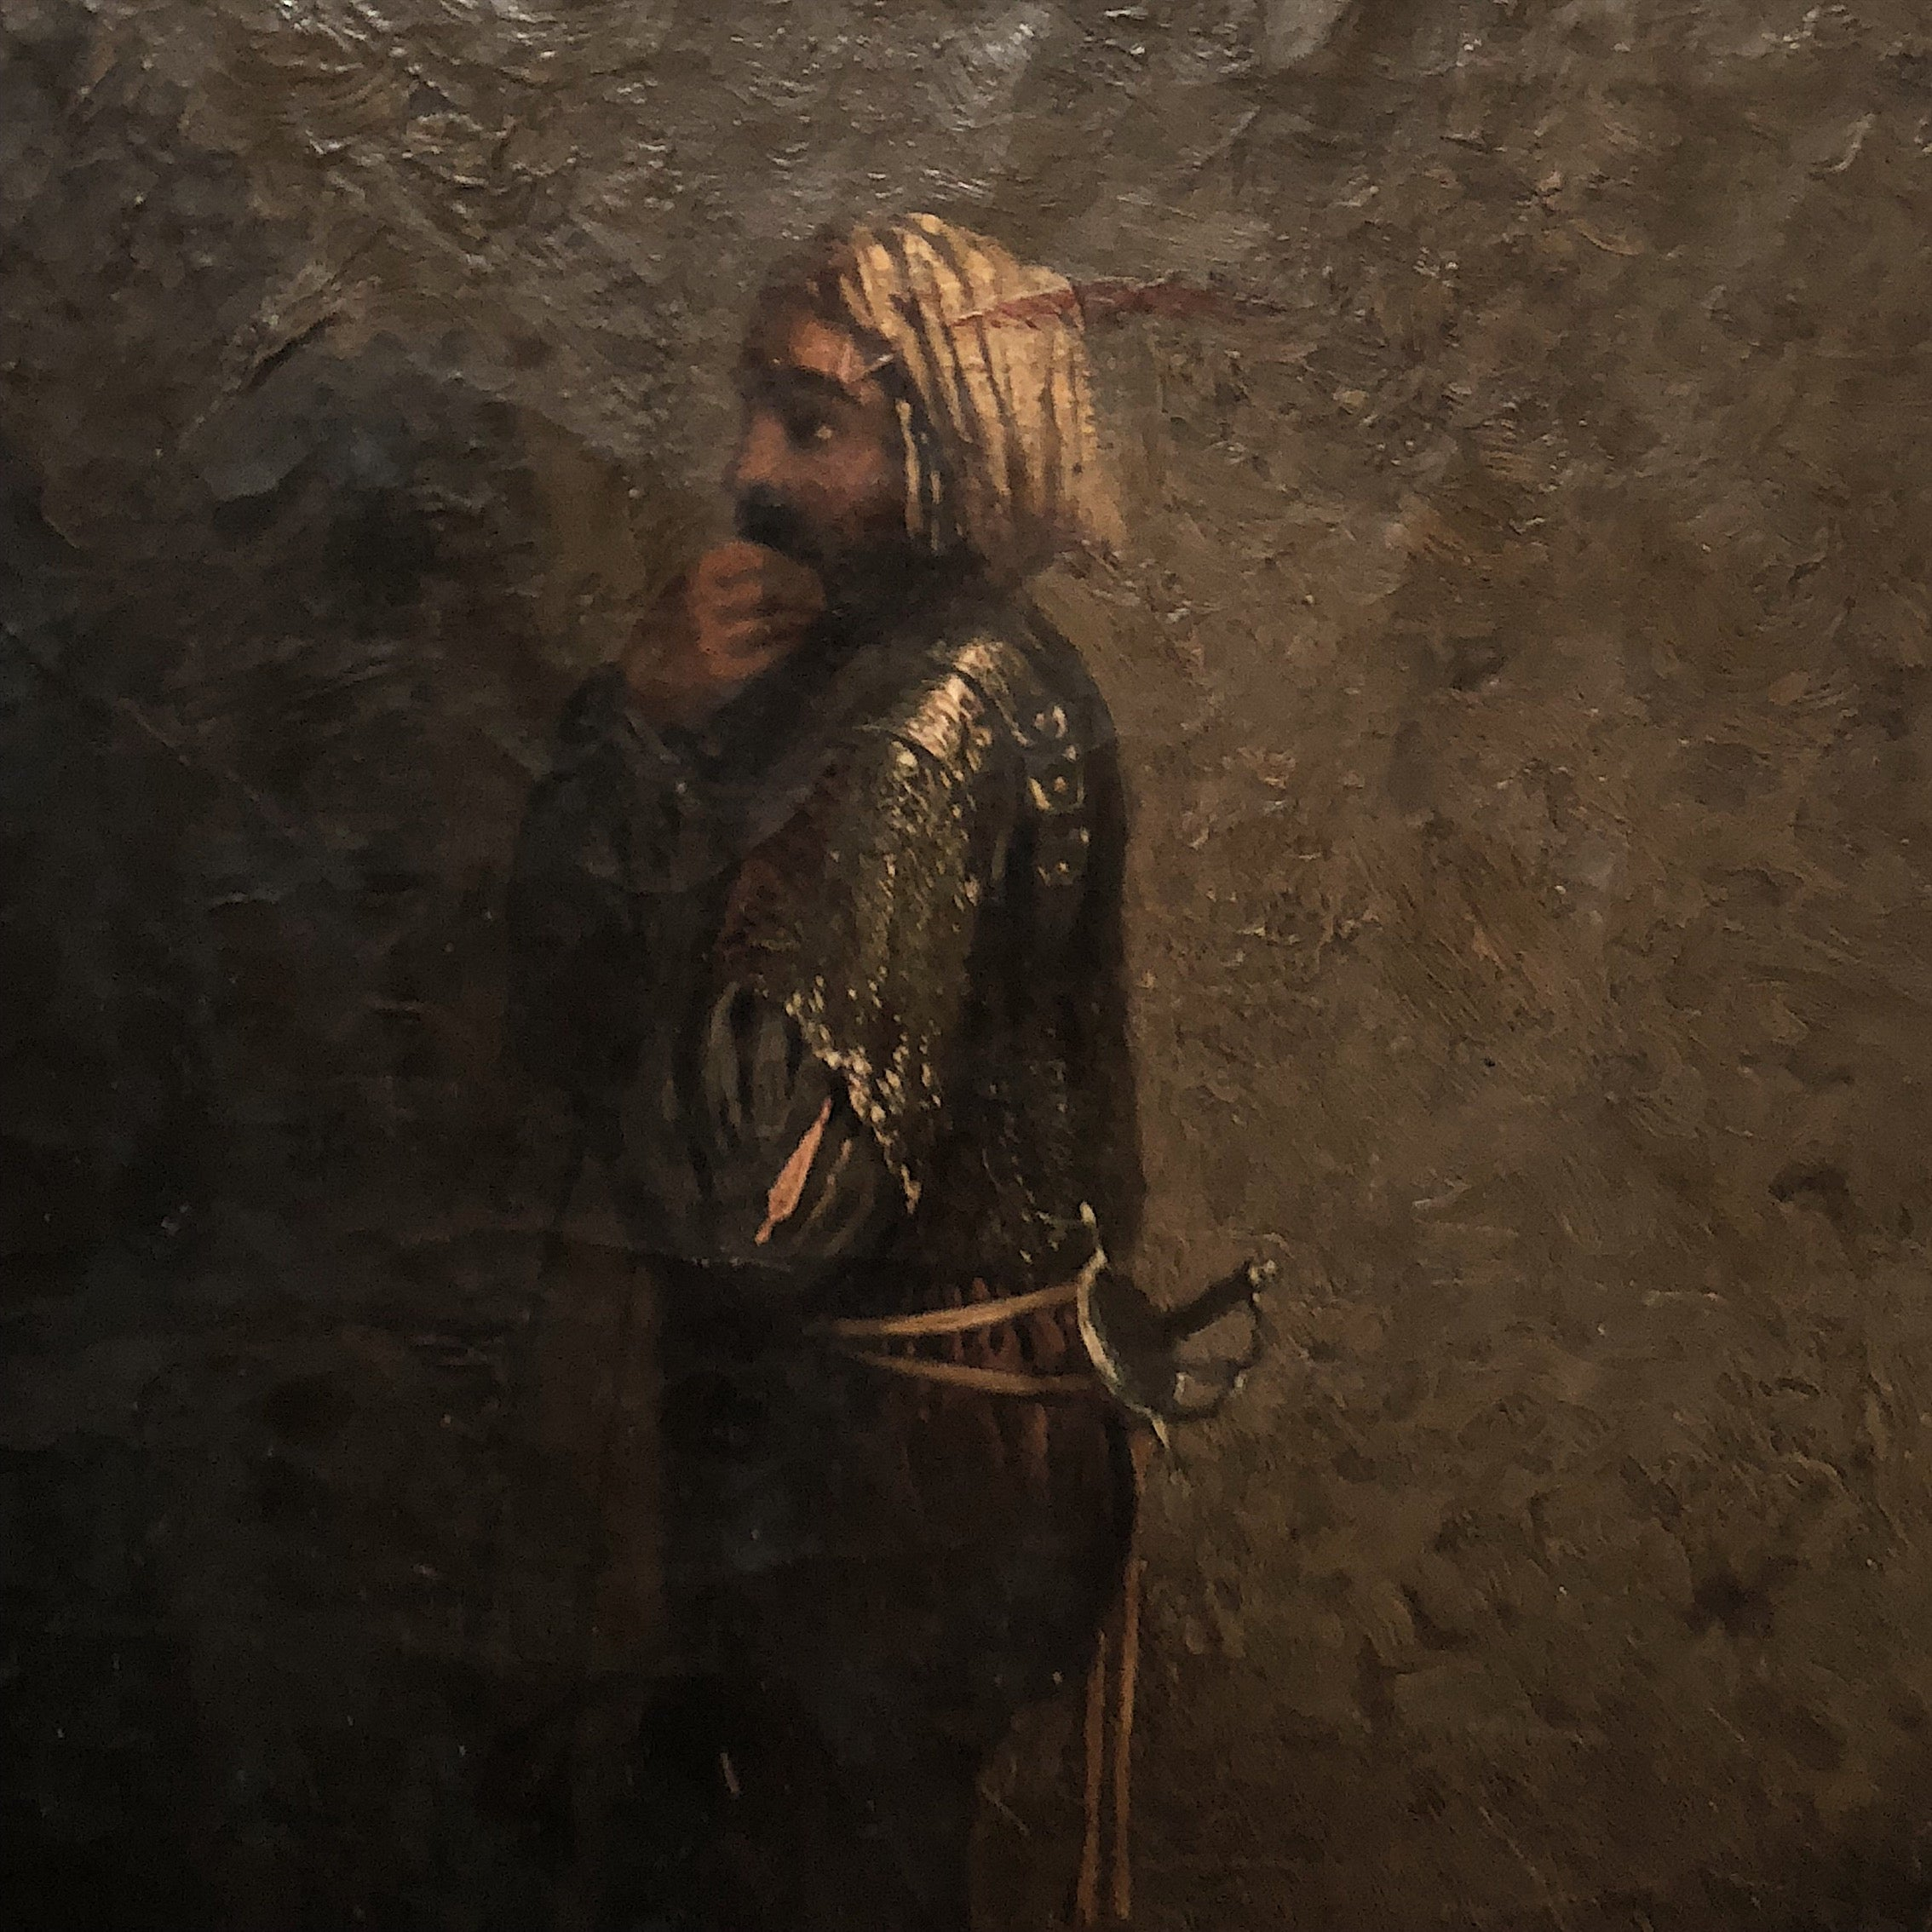 Antique Oil Painting of Arabian Warrior Peering into the Darkness - Mystery Artist - Persian Artwork